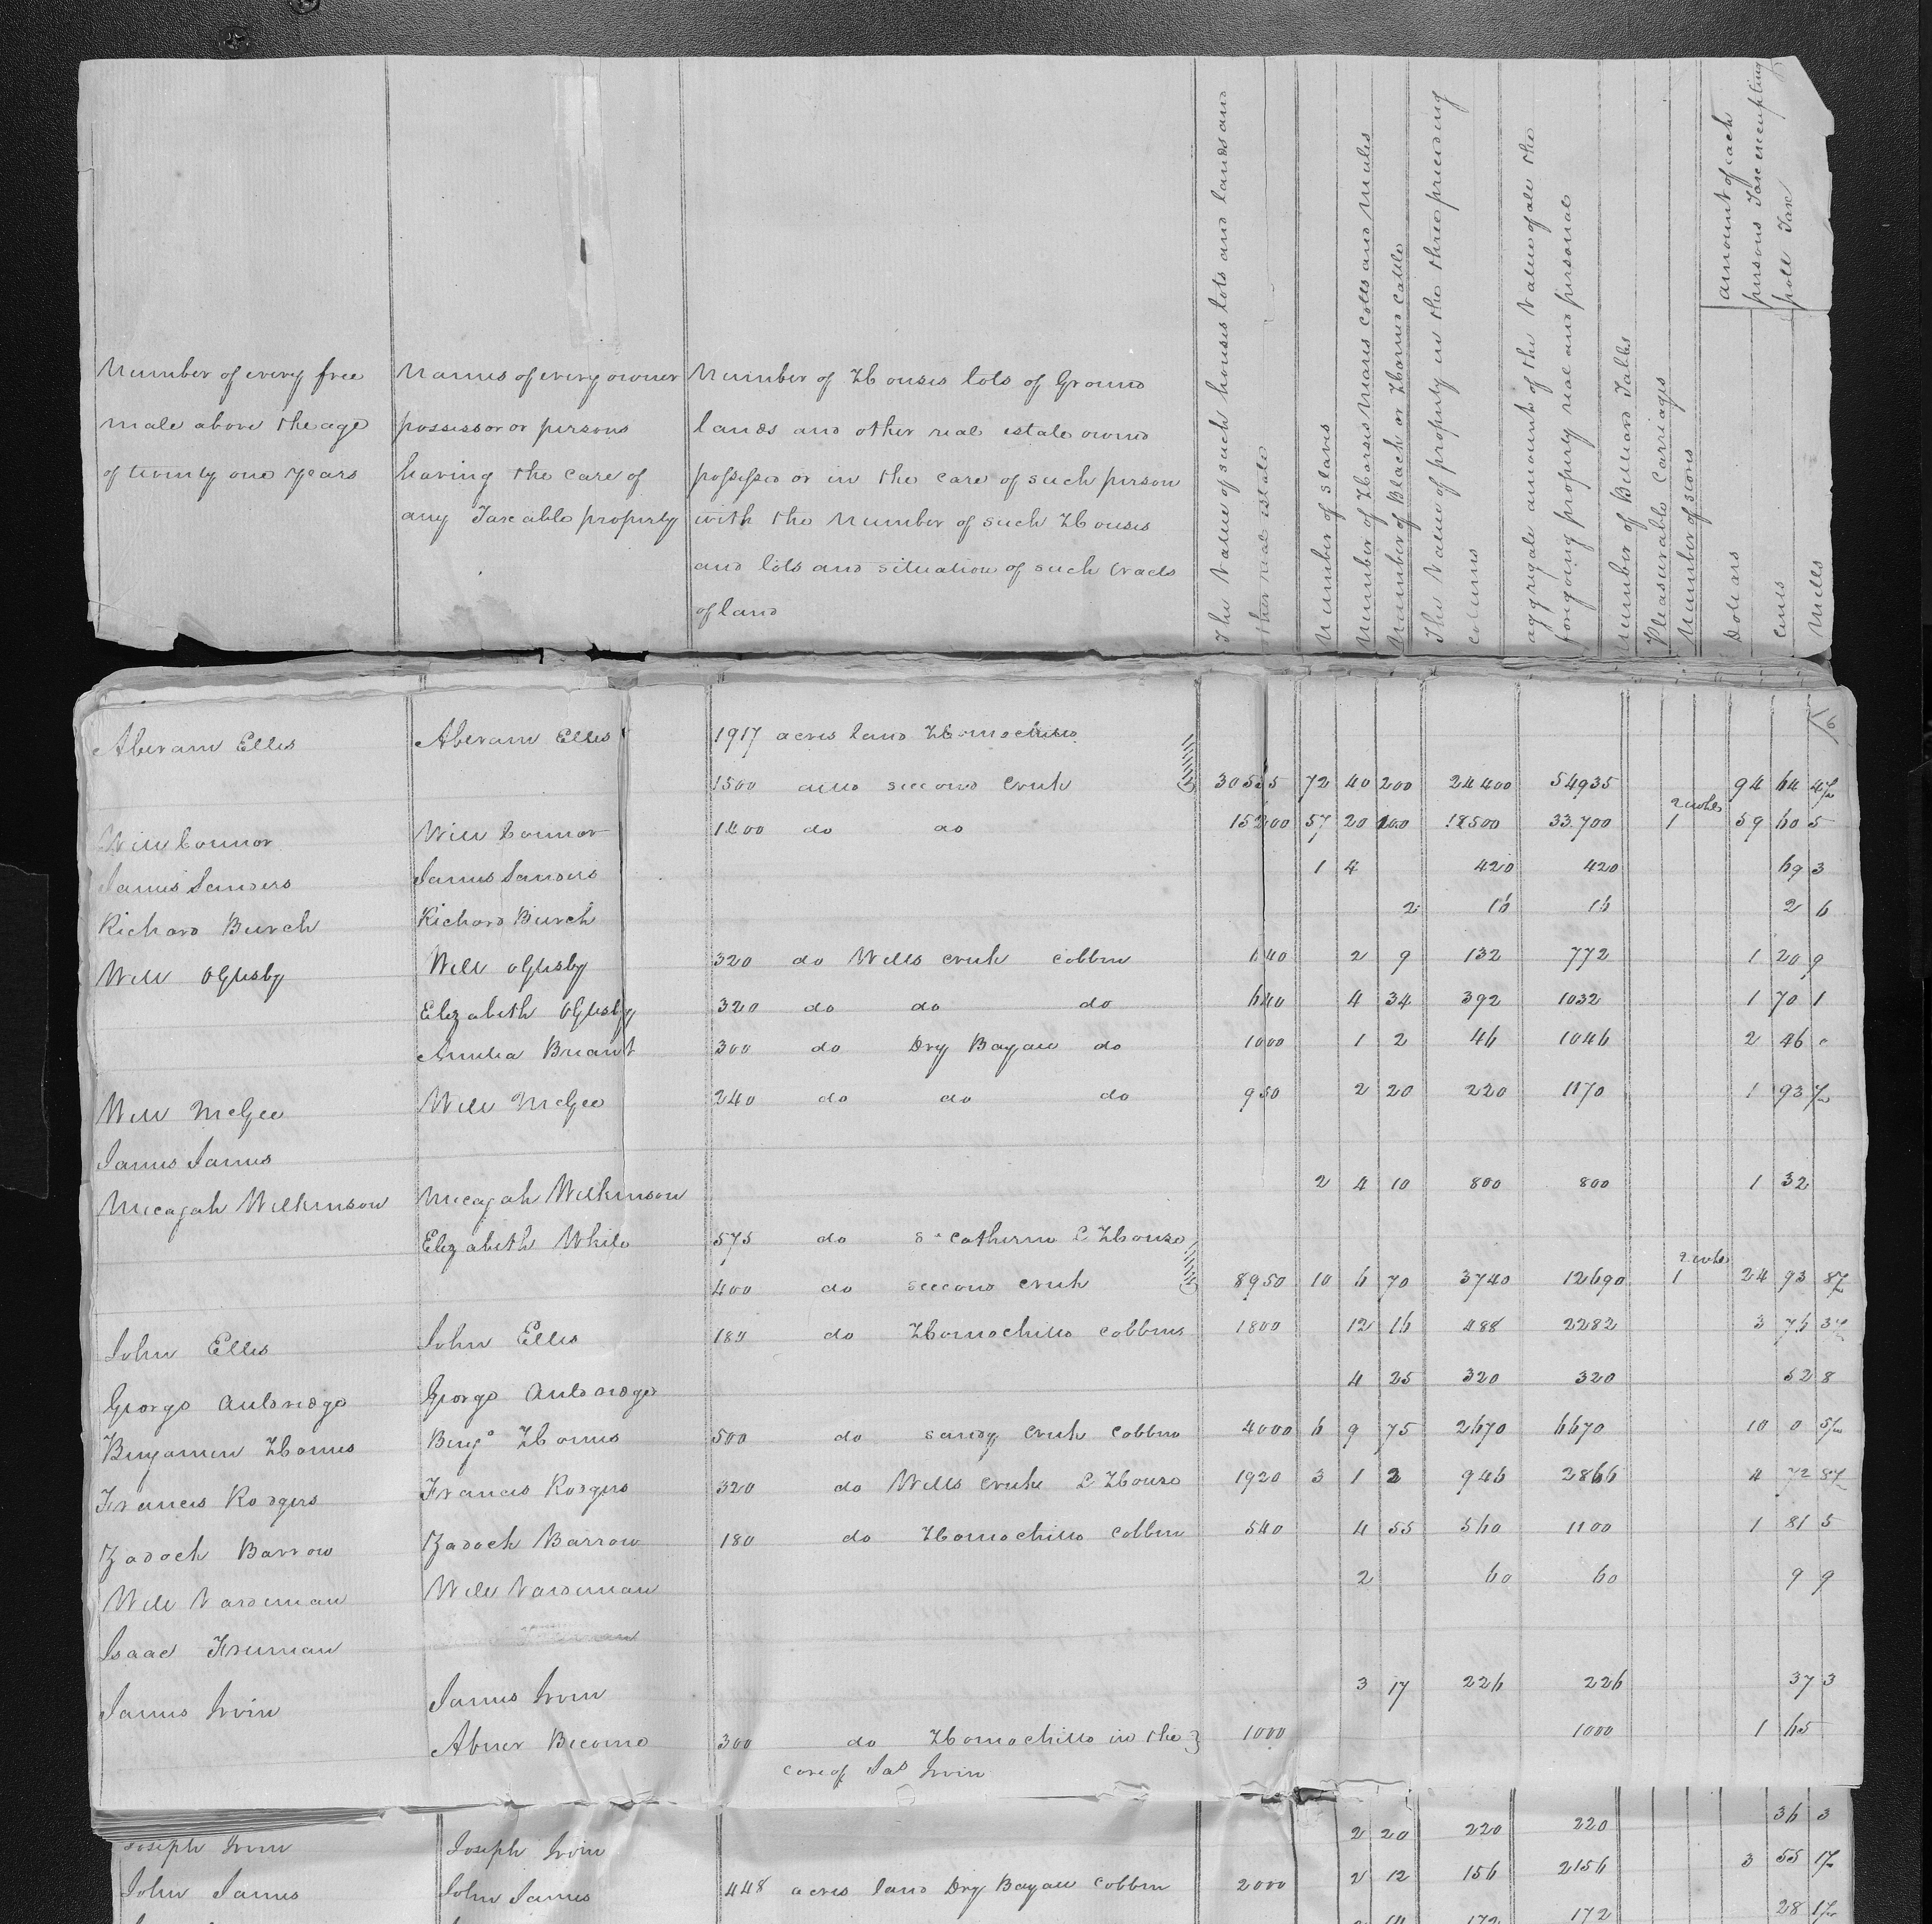 Will Magee, Richard Burch and various James men on 1805 Tax List Adams Co MS